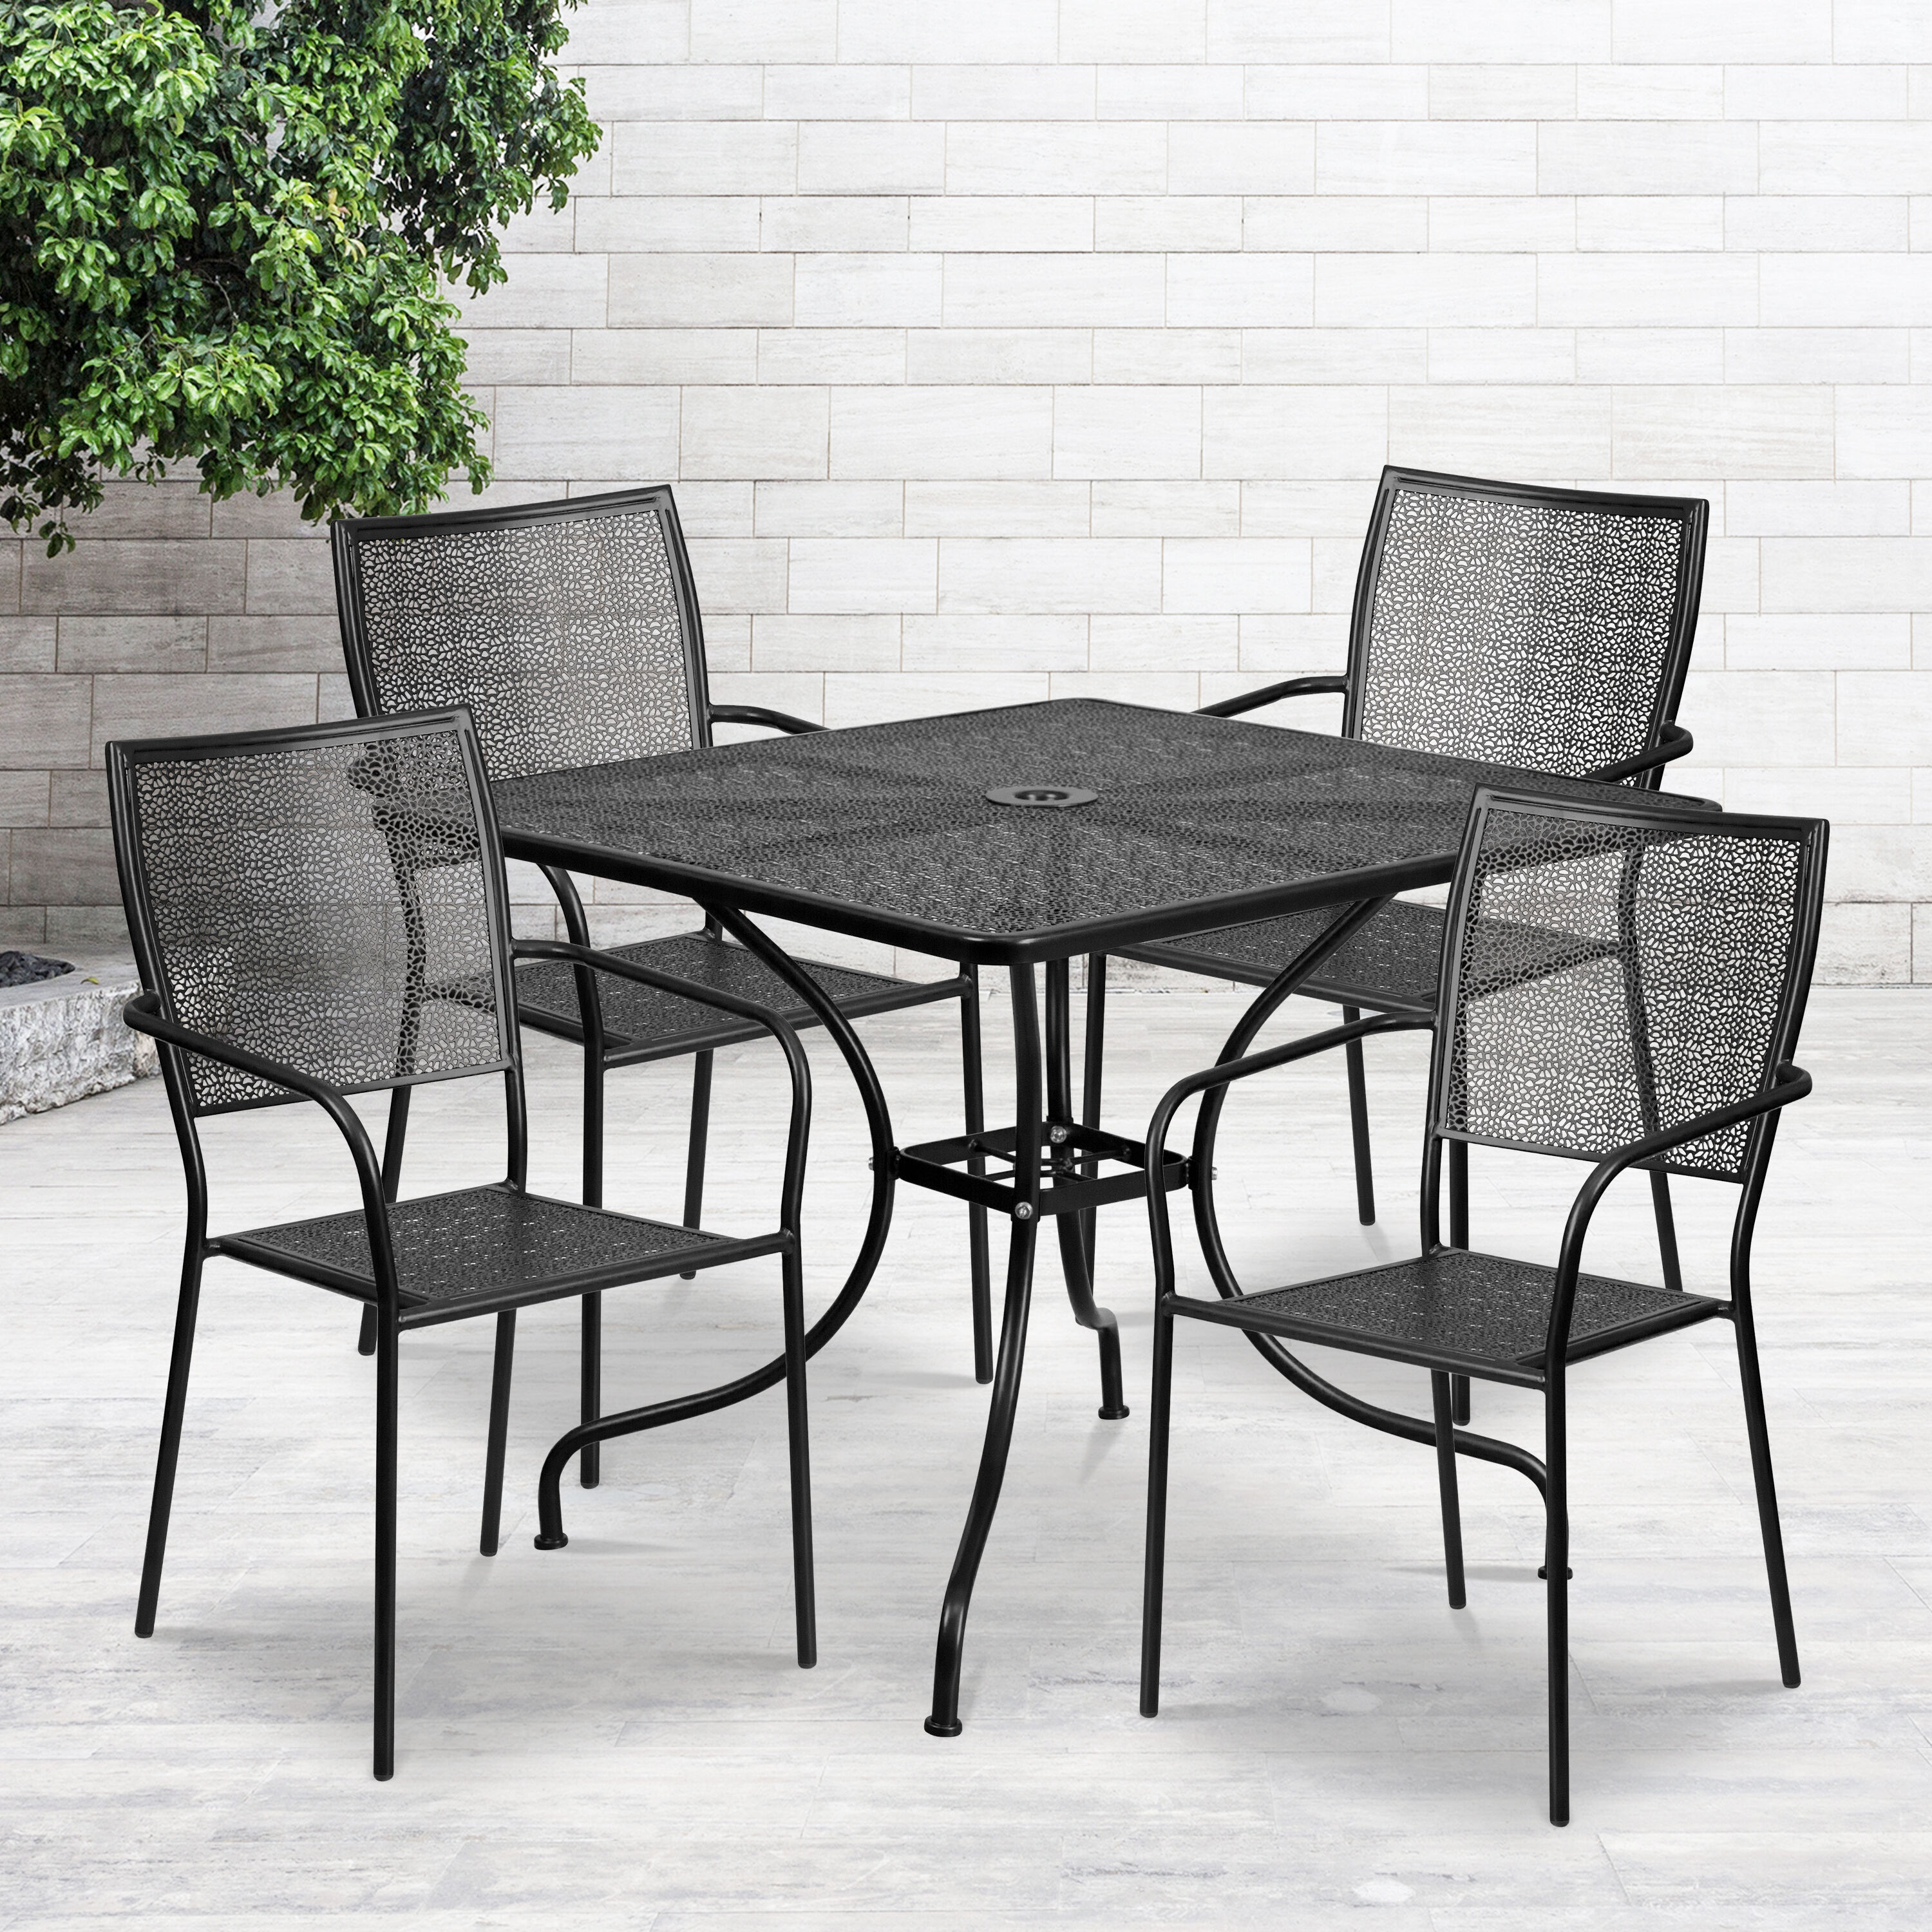 commercial grade 35 5 square black indoor outdoor steel patio table set with 4 square back chairs